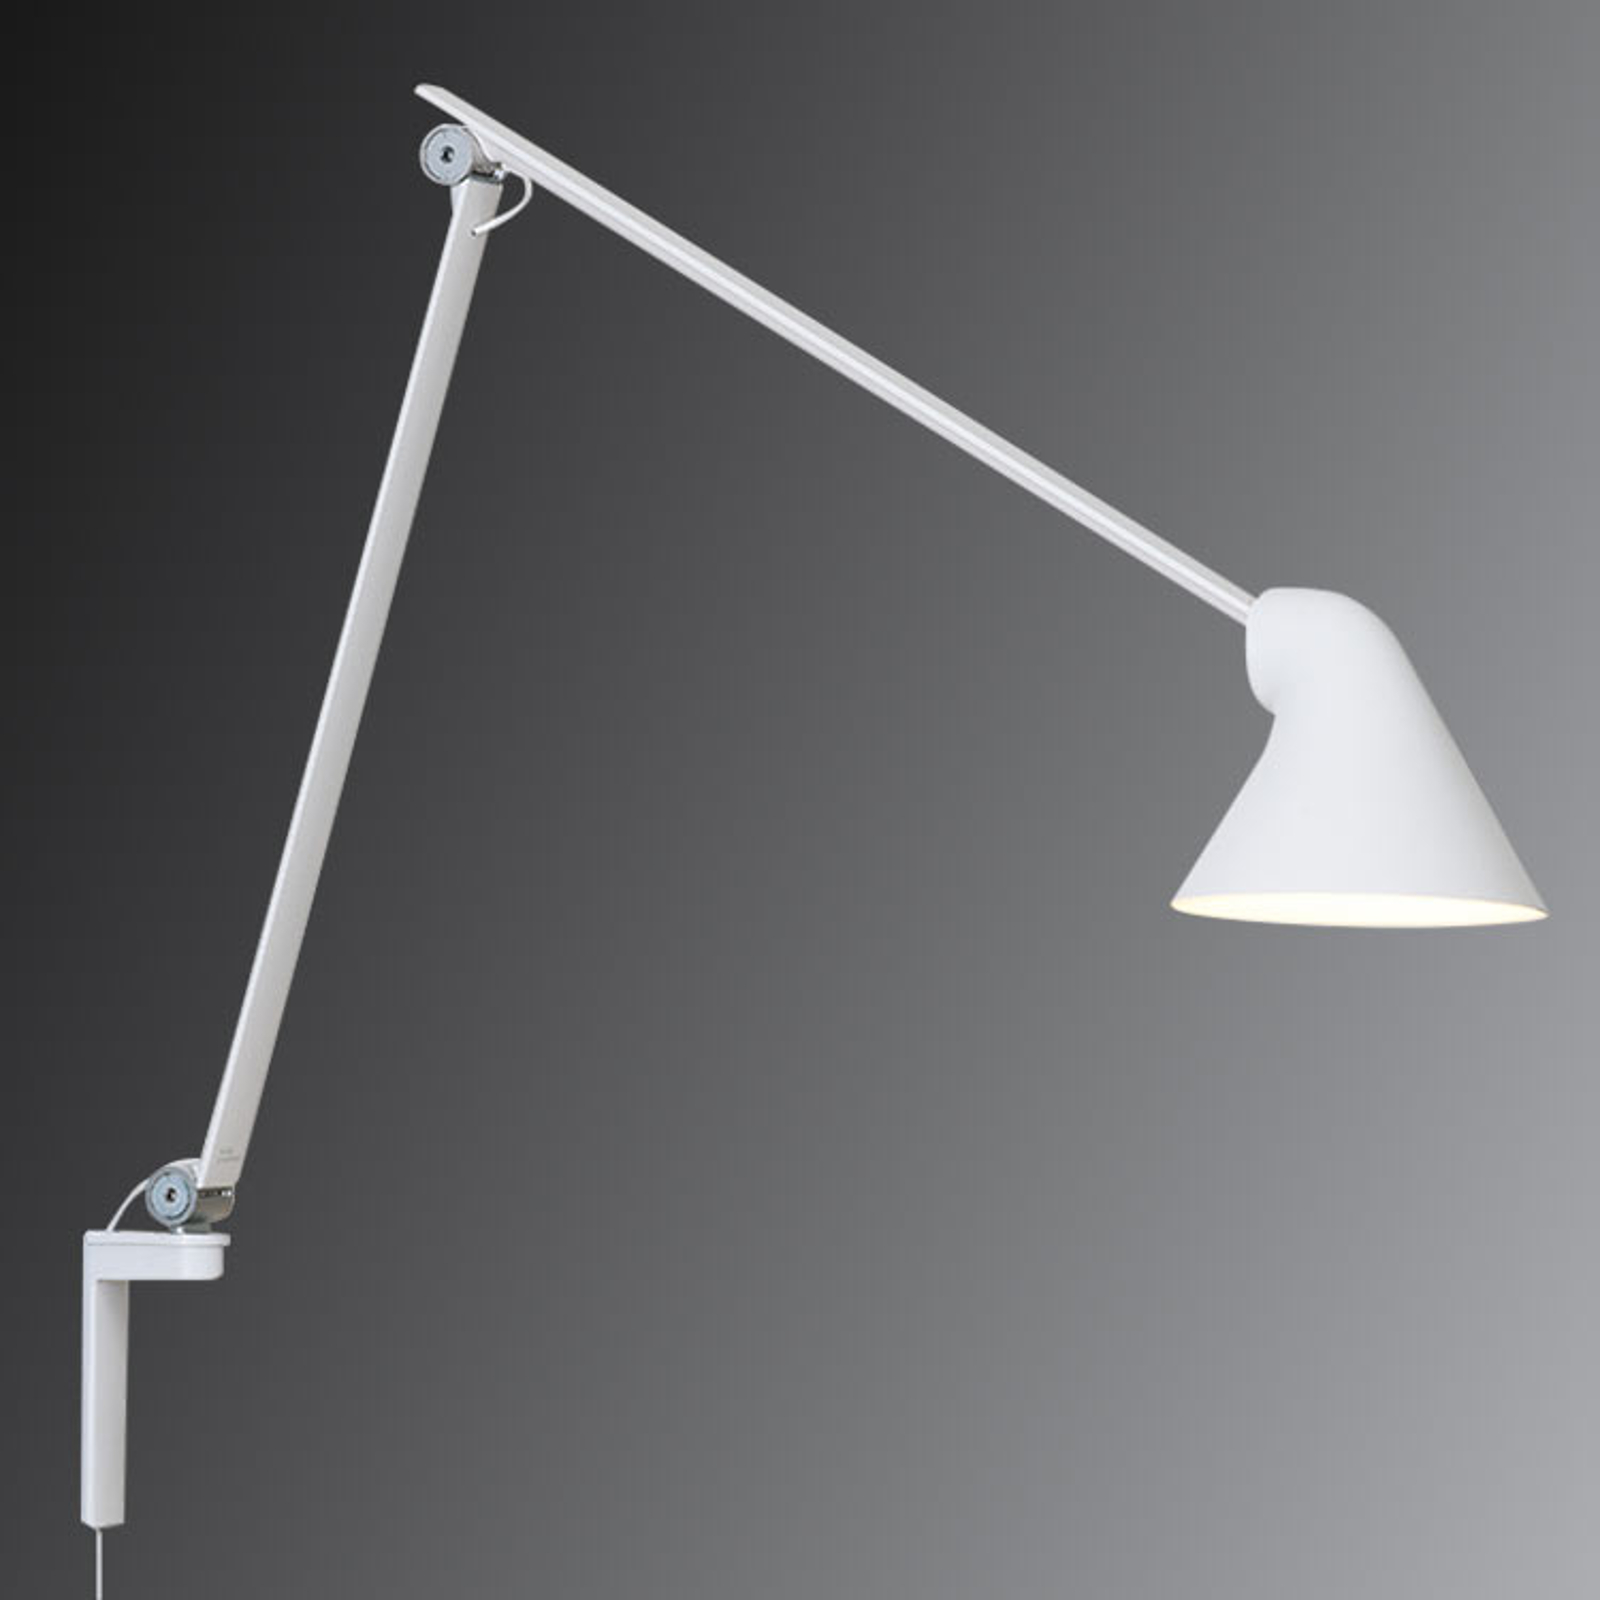 Louis Poulsen NJP LED wandlamp, lange arm, wit